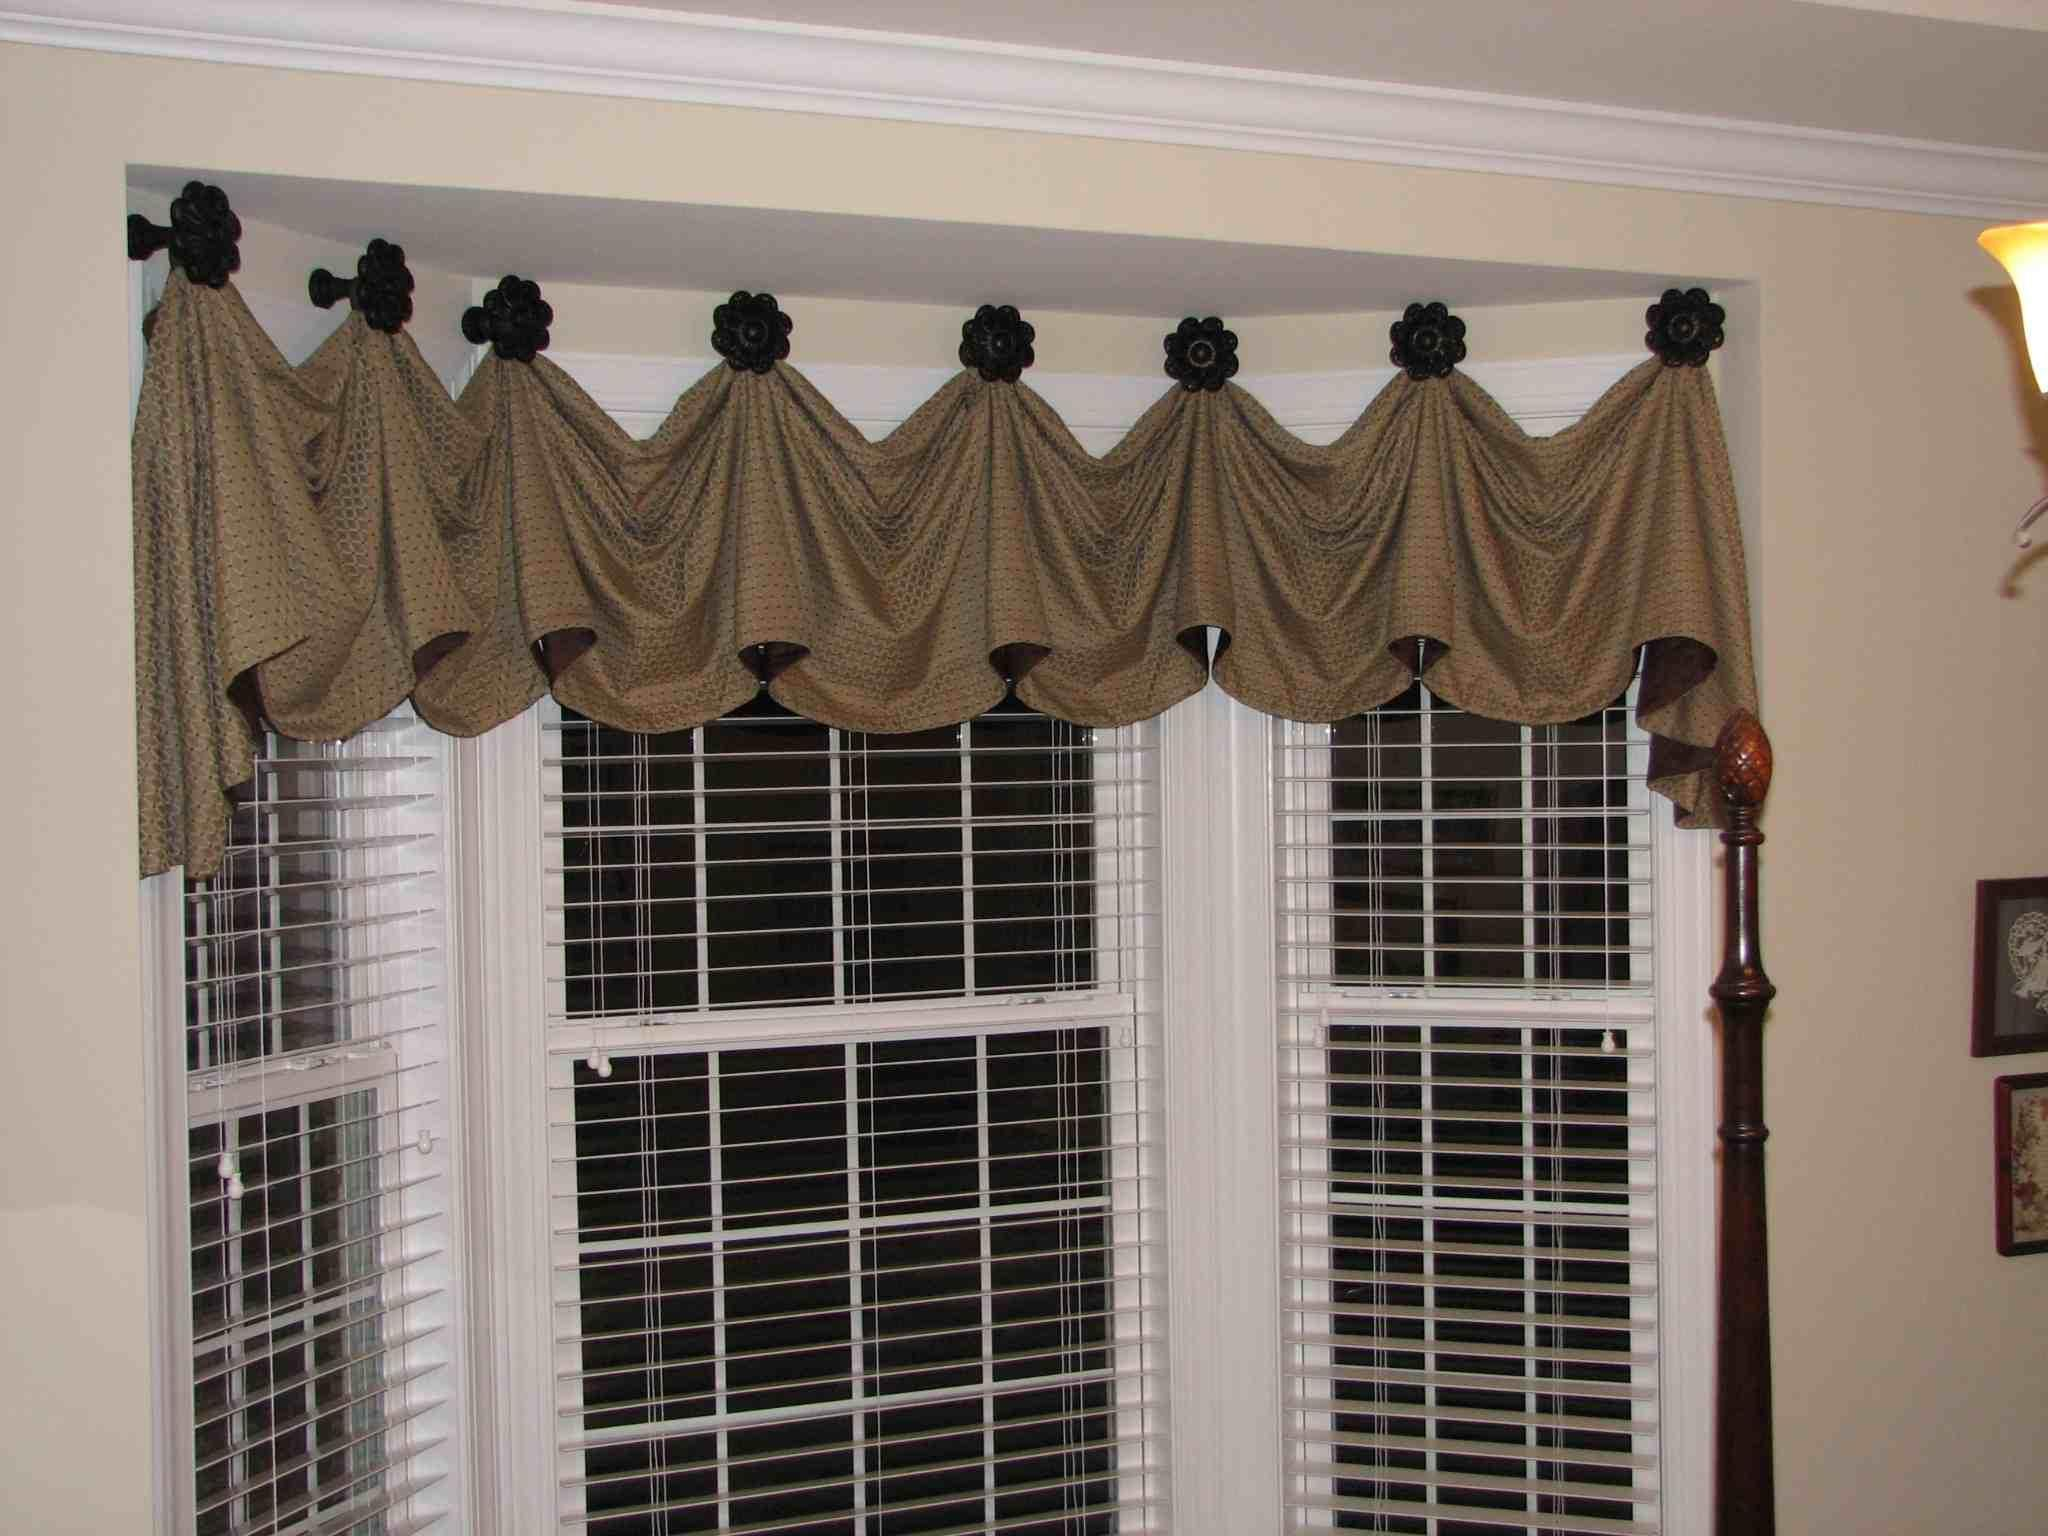 Living Room Valances window treatment valance ideas tailored |  window valance ideas